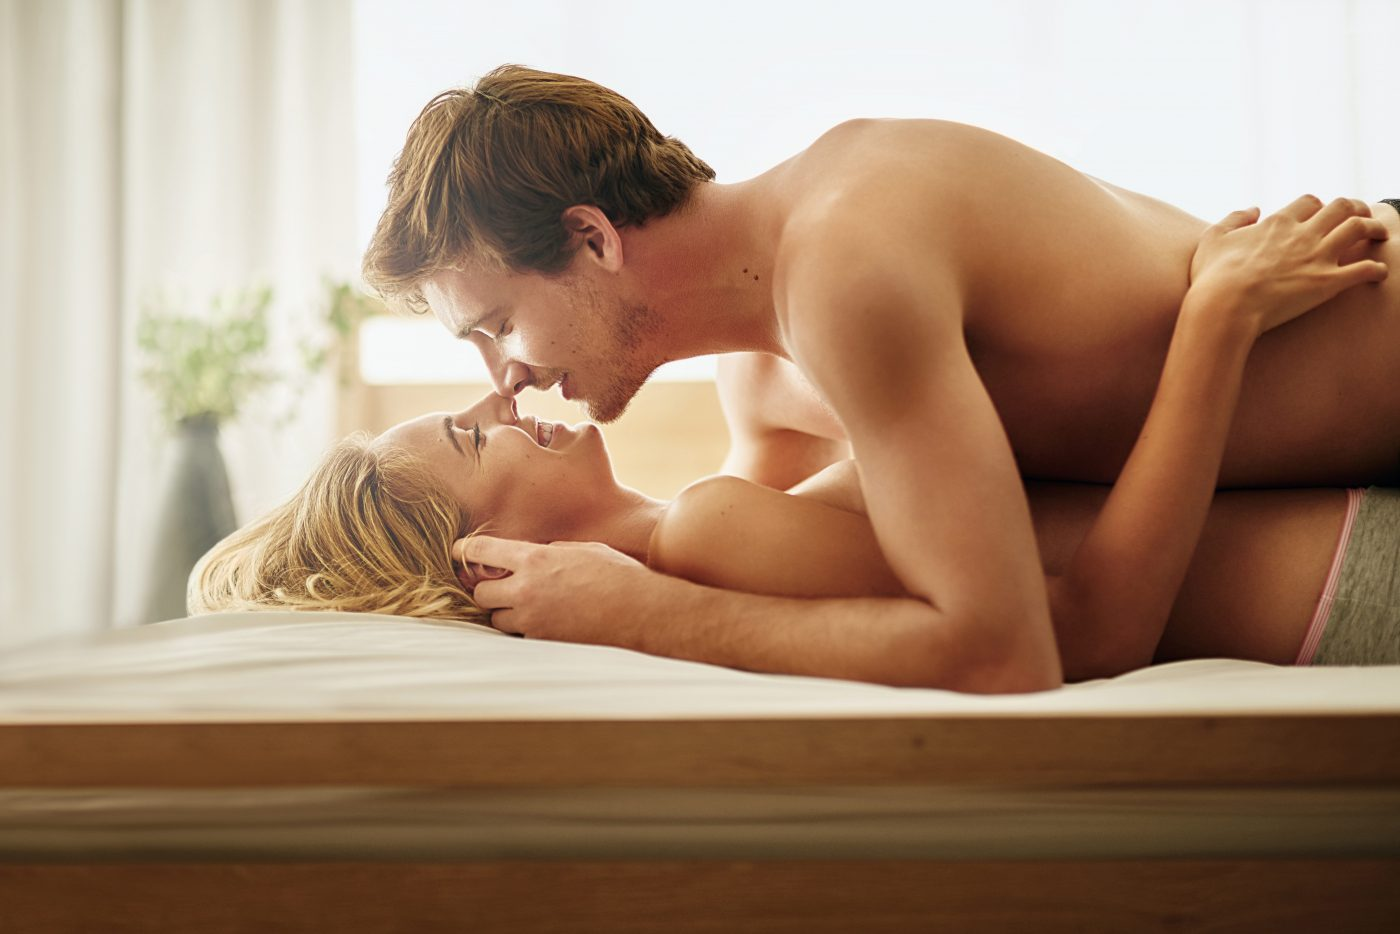 Women Reveal The Specific Movements That Make Them Orgasm